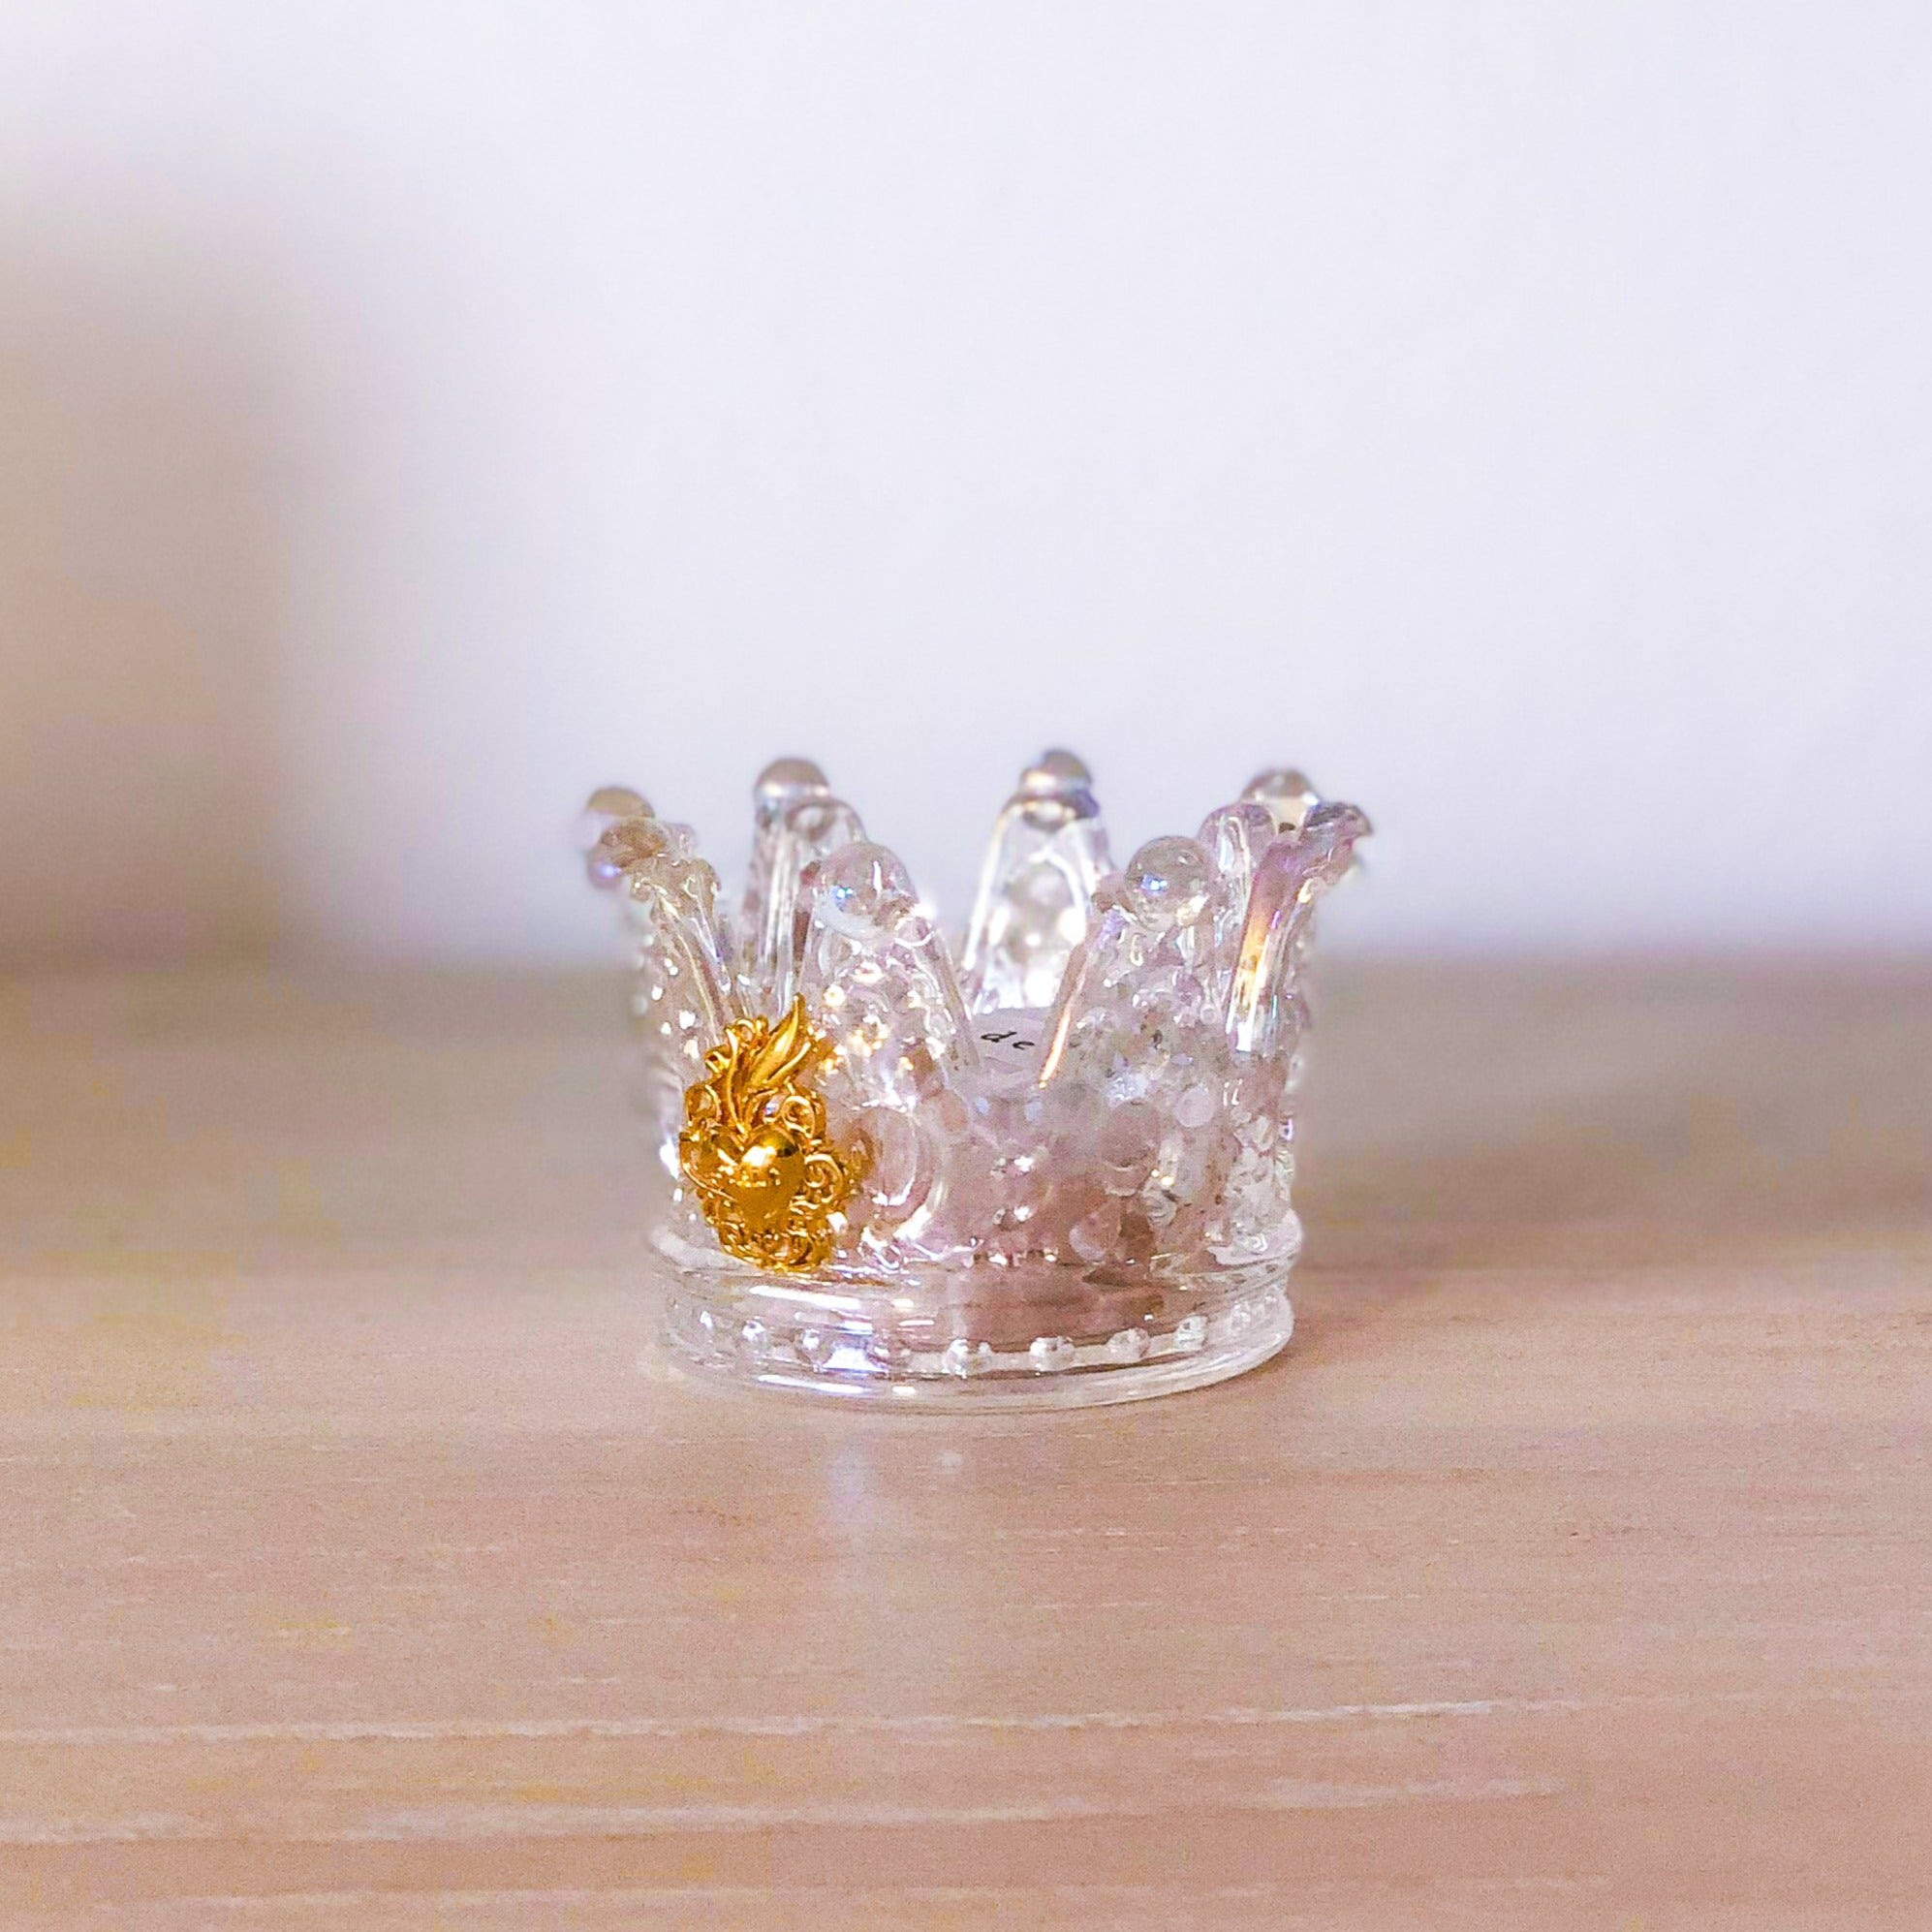 Little Lux Crown Prayer Candle & Beeswax Insert, Iridescent - FIRST LOVE EDITION